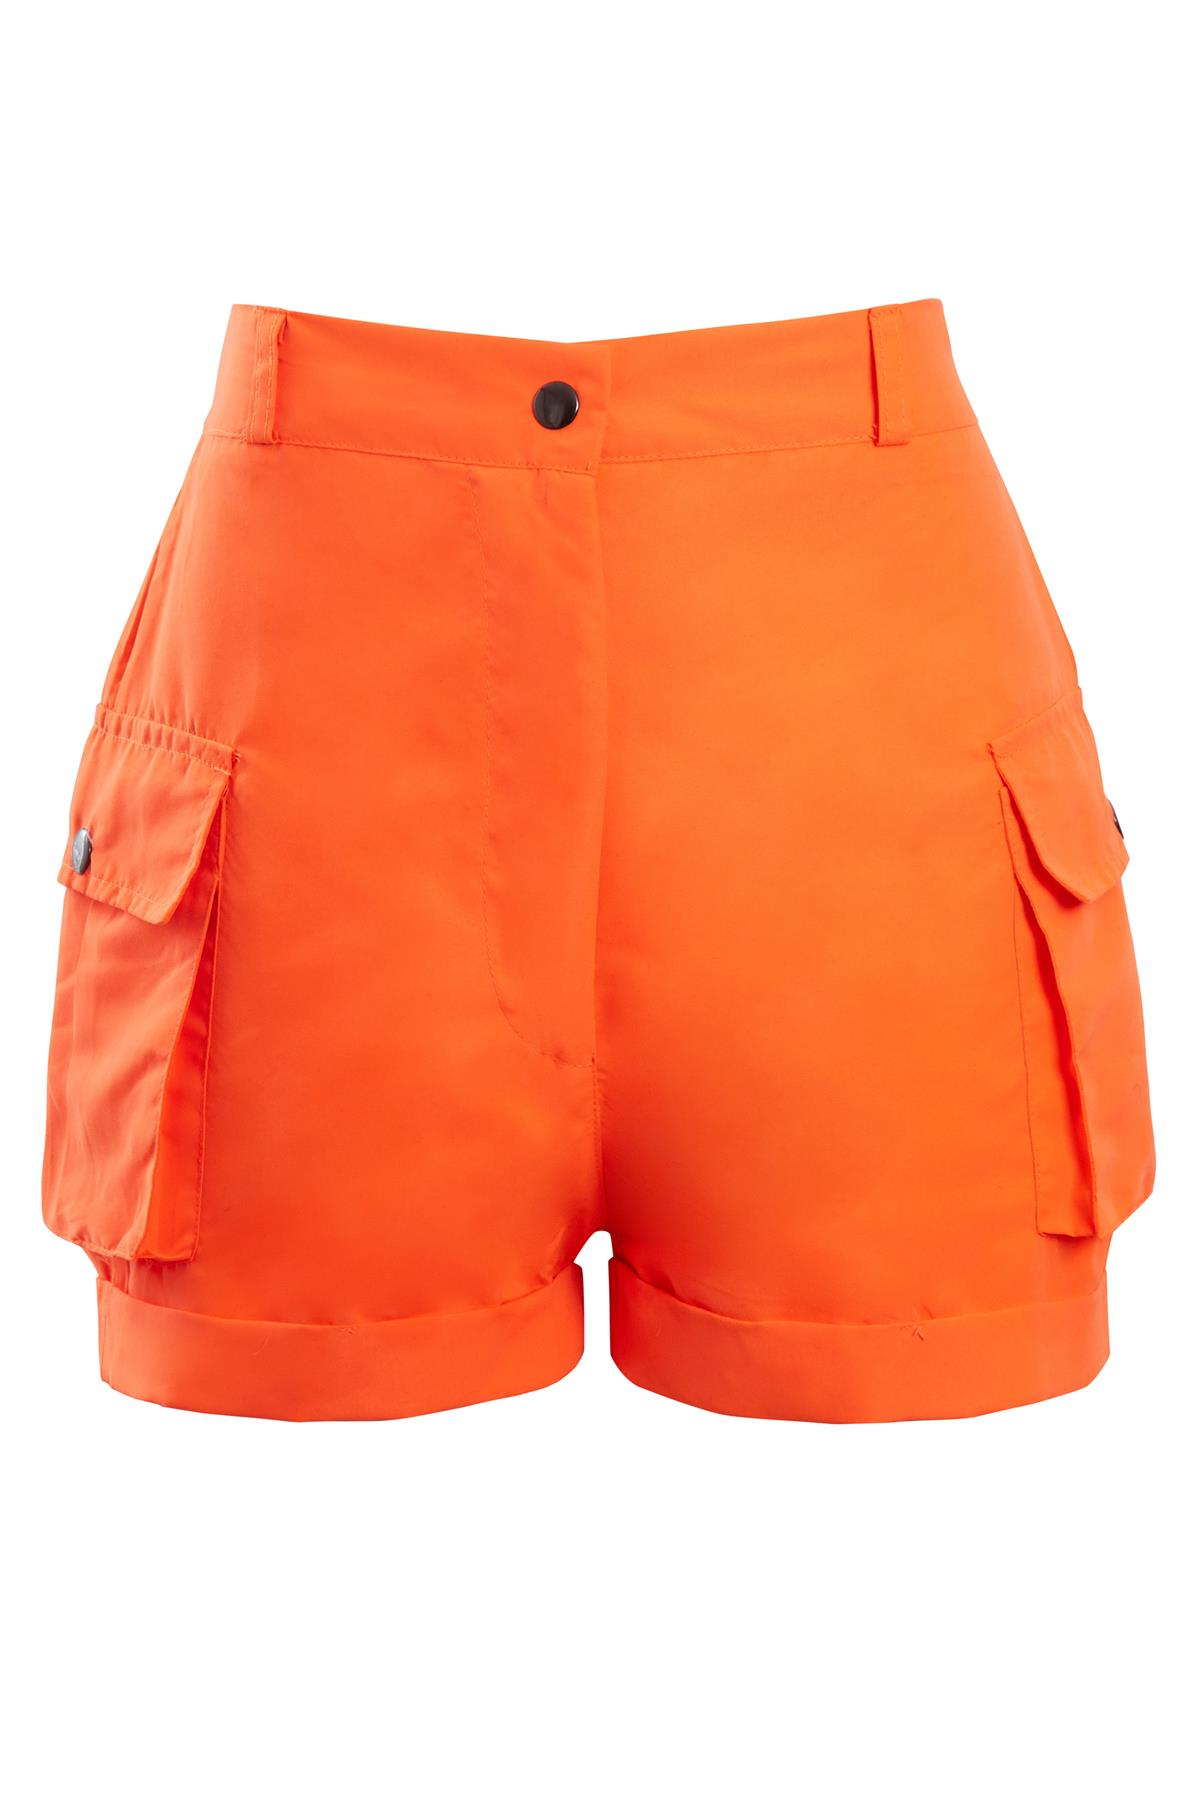 Shelikes-Womens-Cargo-Crop-Top-Shorts-Co-ord-Festival-Tie-Front-Pocket-Set thumbnail 17